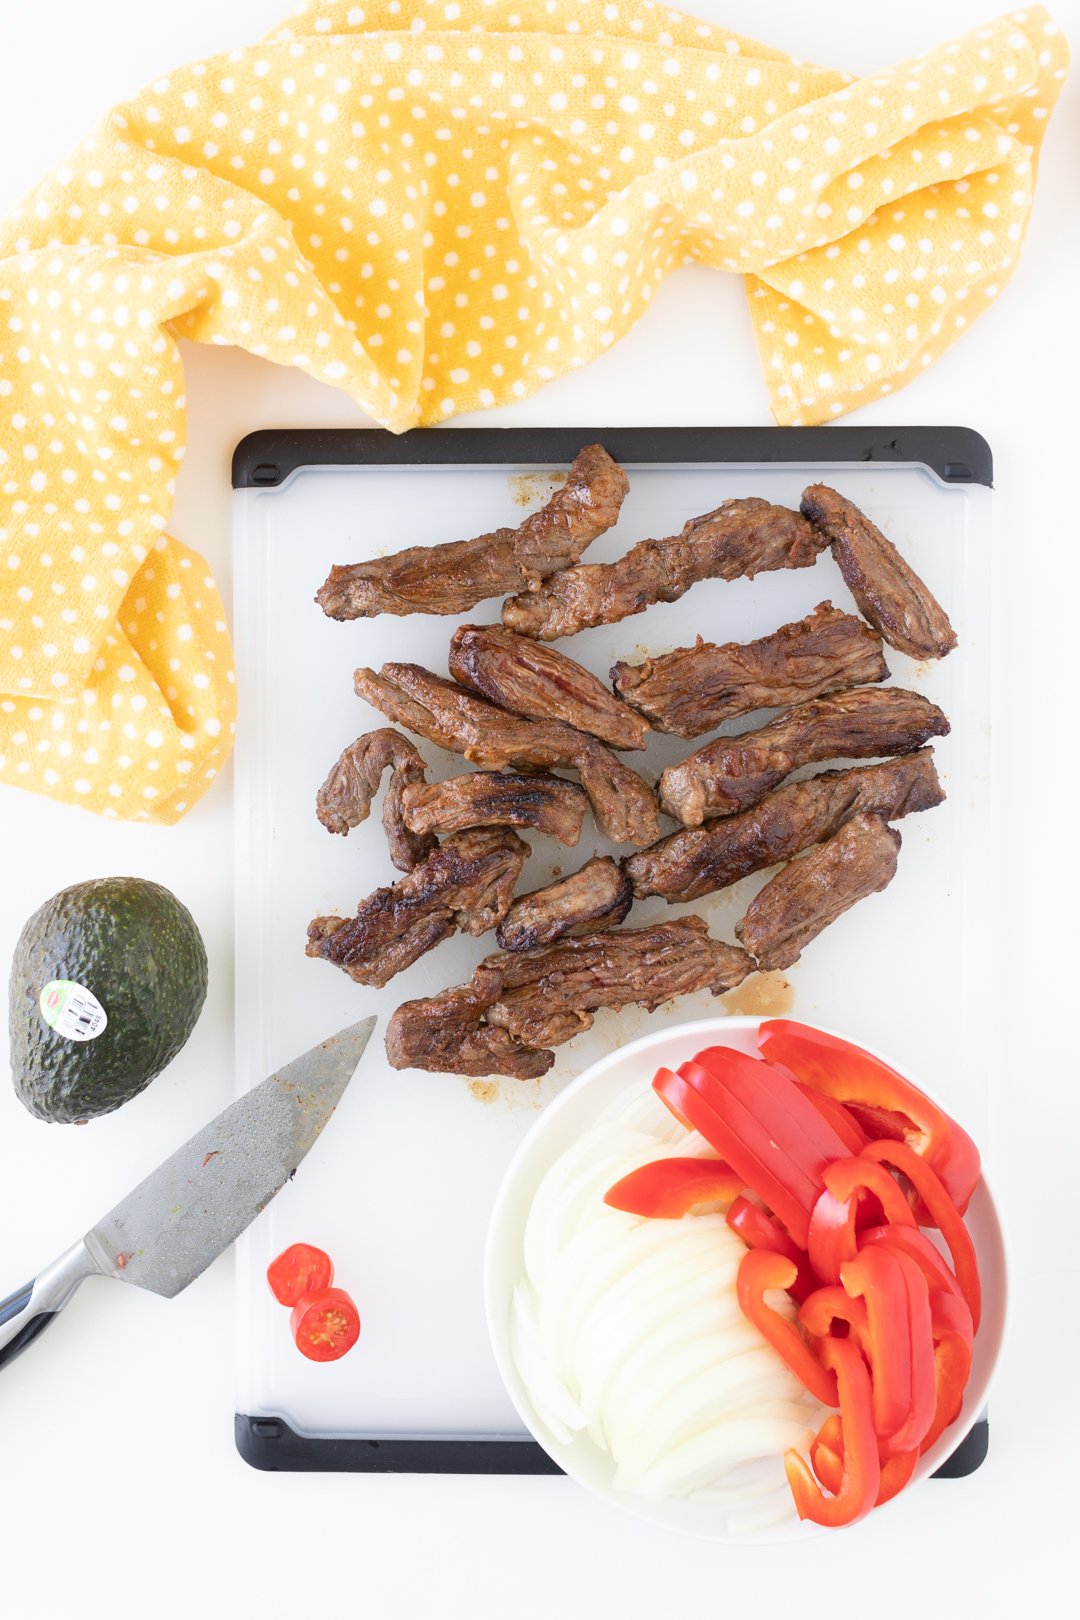 chopped steak strips on a cutting board with fresh cut peppers and onions nearby